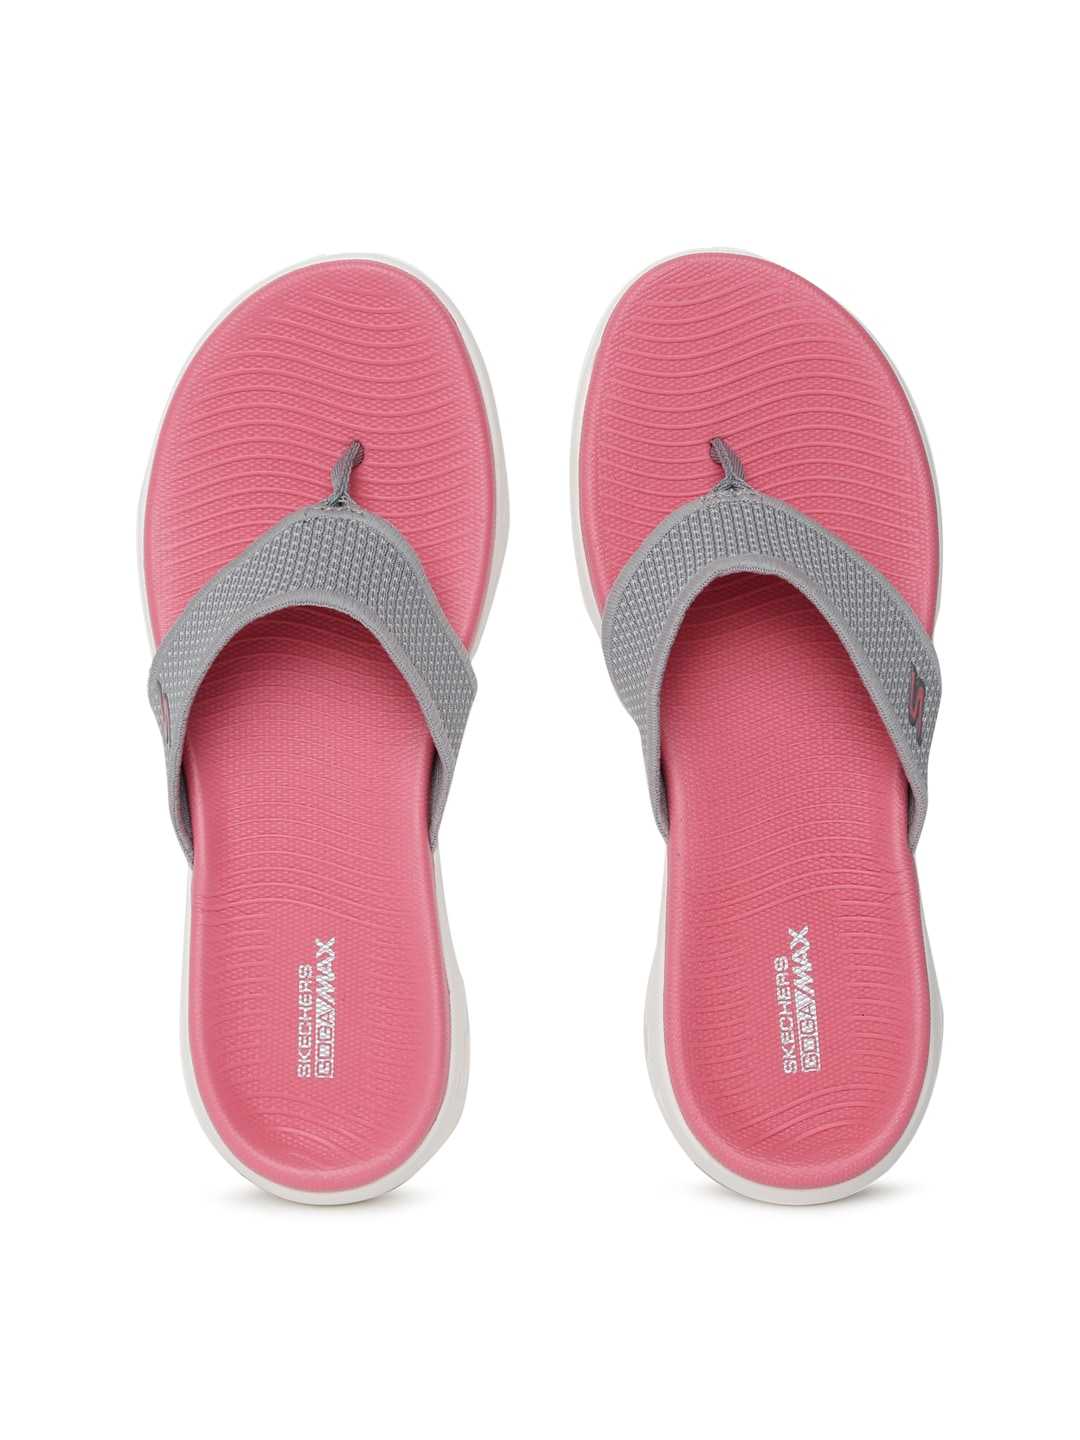 450f2d0cf7c4 Skechers On The Go Flow GREY FLIP FLOPS for women - Get stylish ...